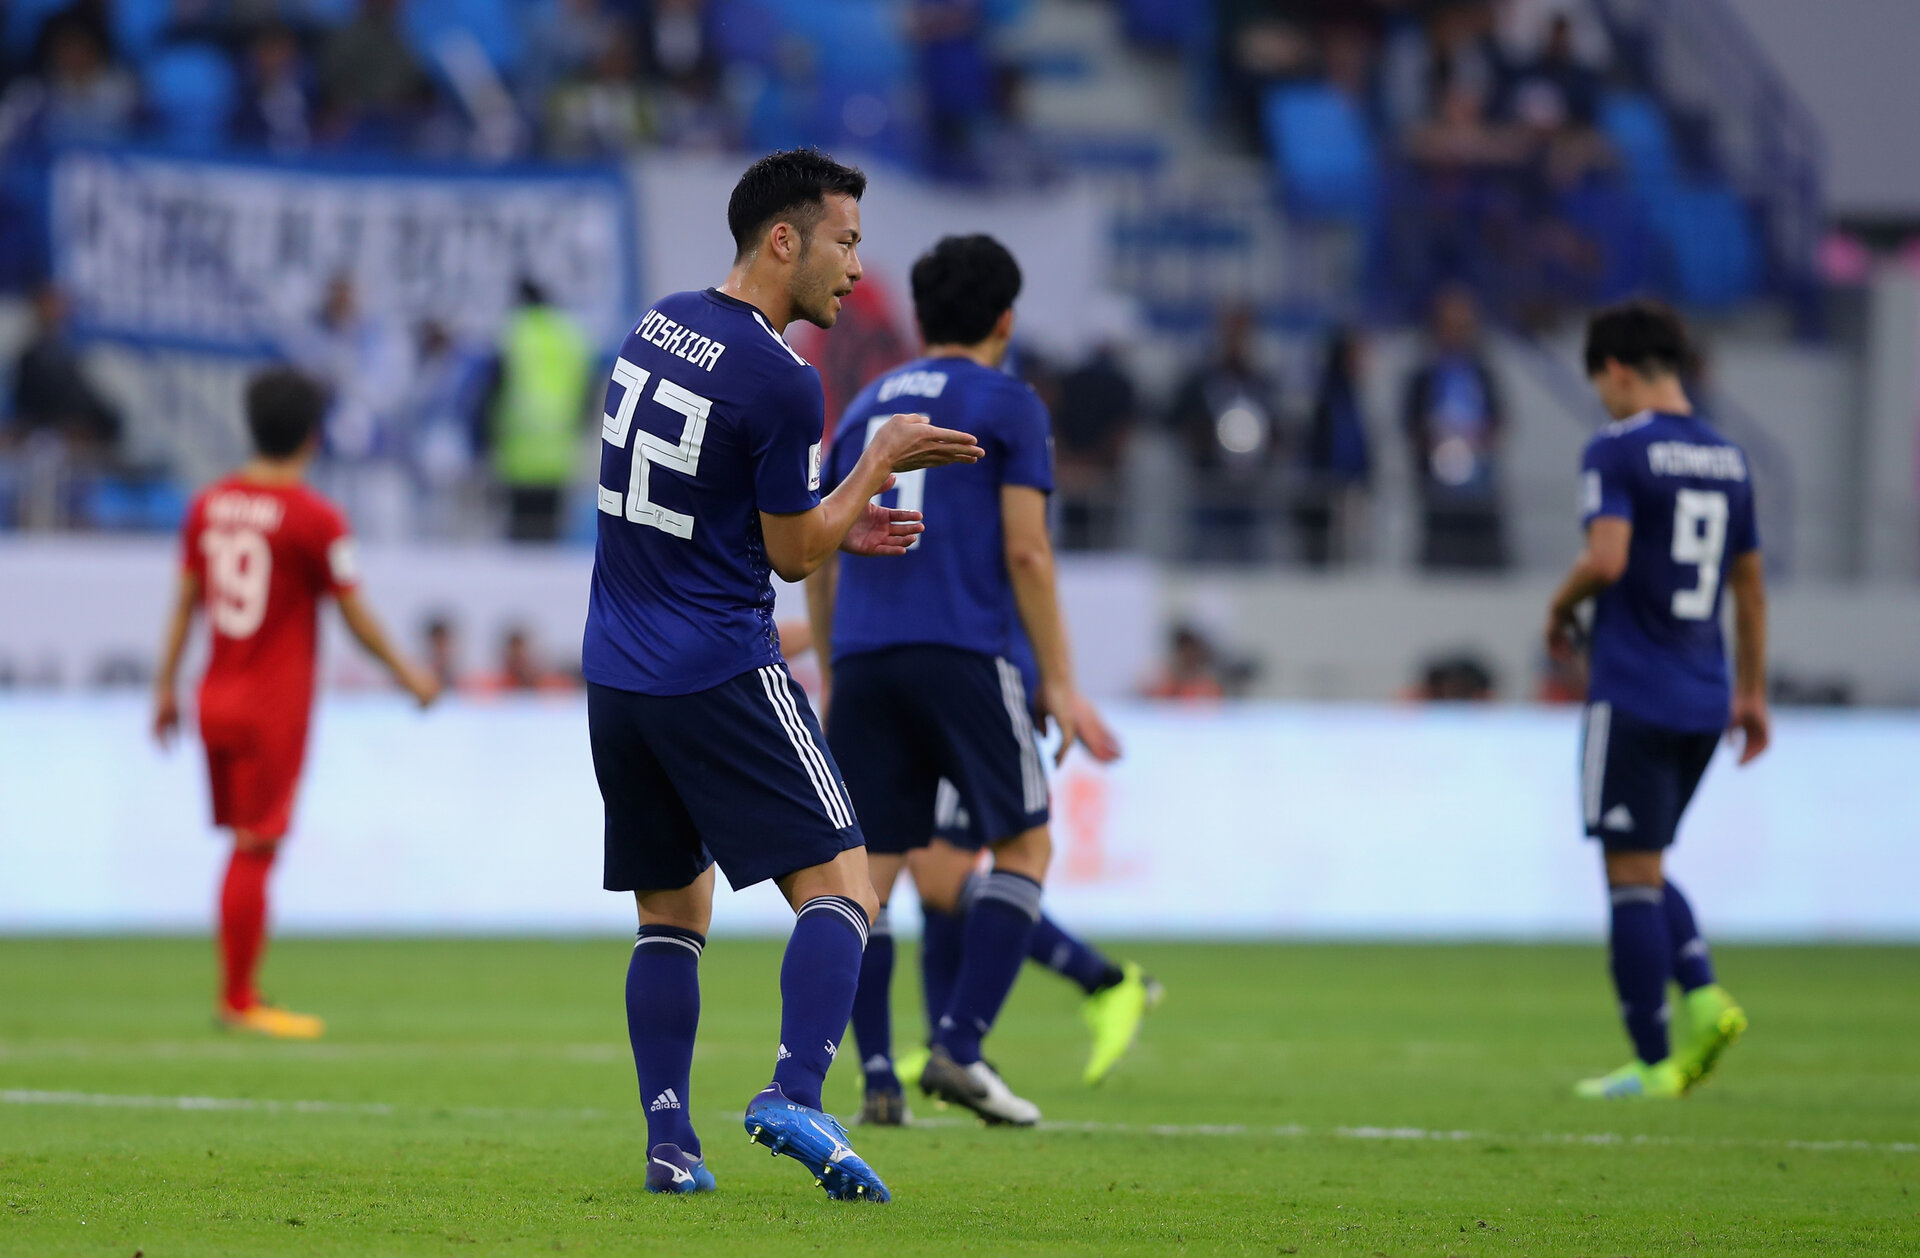 DUBAI, UNITED ARAB EMIRATES - JANUARY 24: Maya Yoshida of Japan(L) reacts after scoring his sides first goal, only for the goal to be disallowed by VAR during the AFC Asian Cup quarter final match between Vietnam and Japan at Al Maktoum Stadium on January 24, 2019 in Dubai, United Arab Emirates. (Photo by Francois Nel/Getty Images)